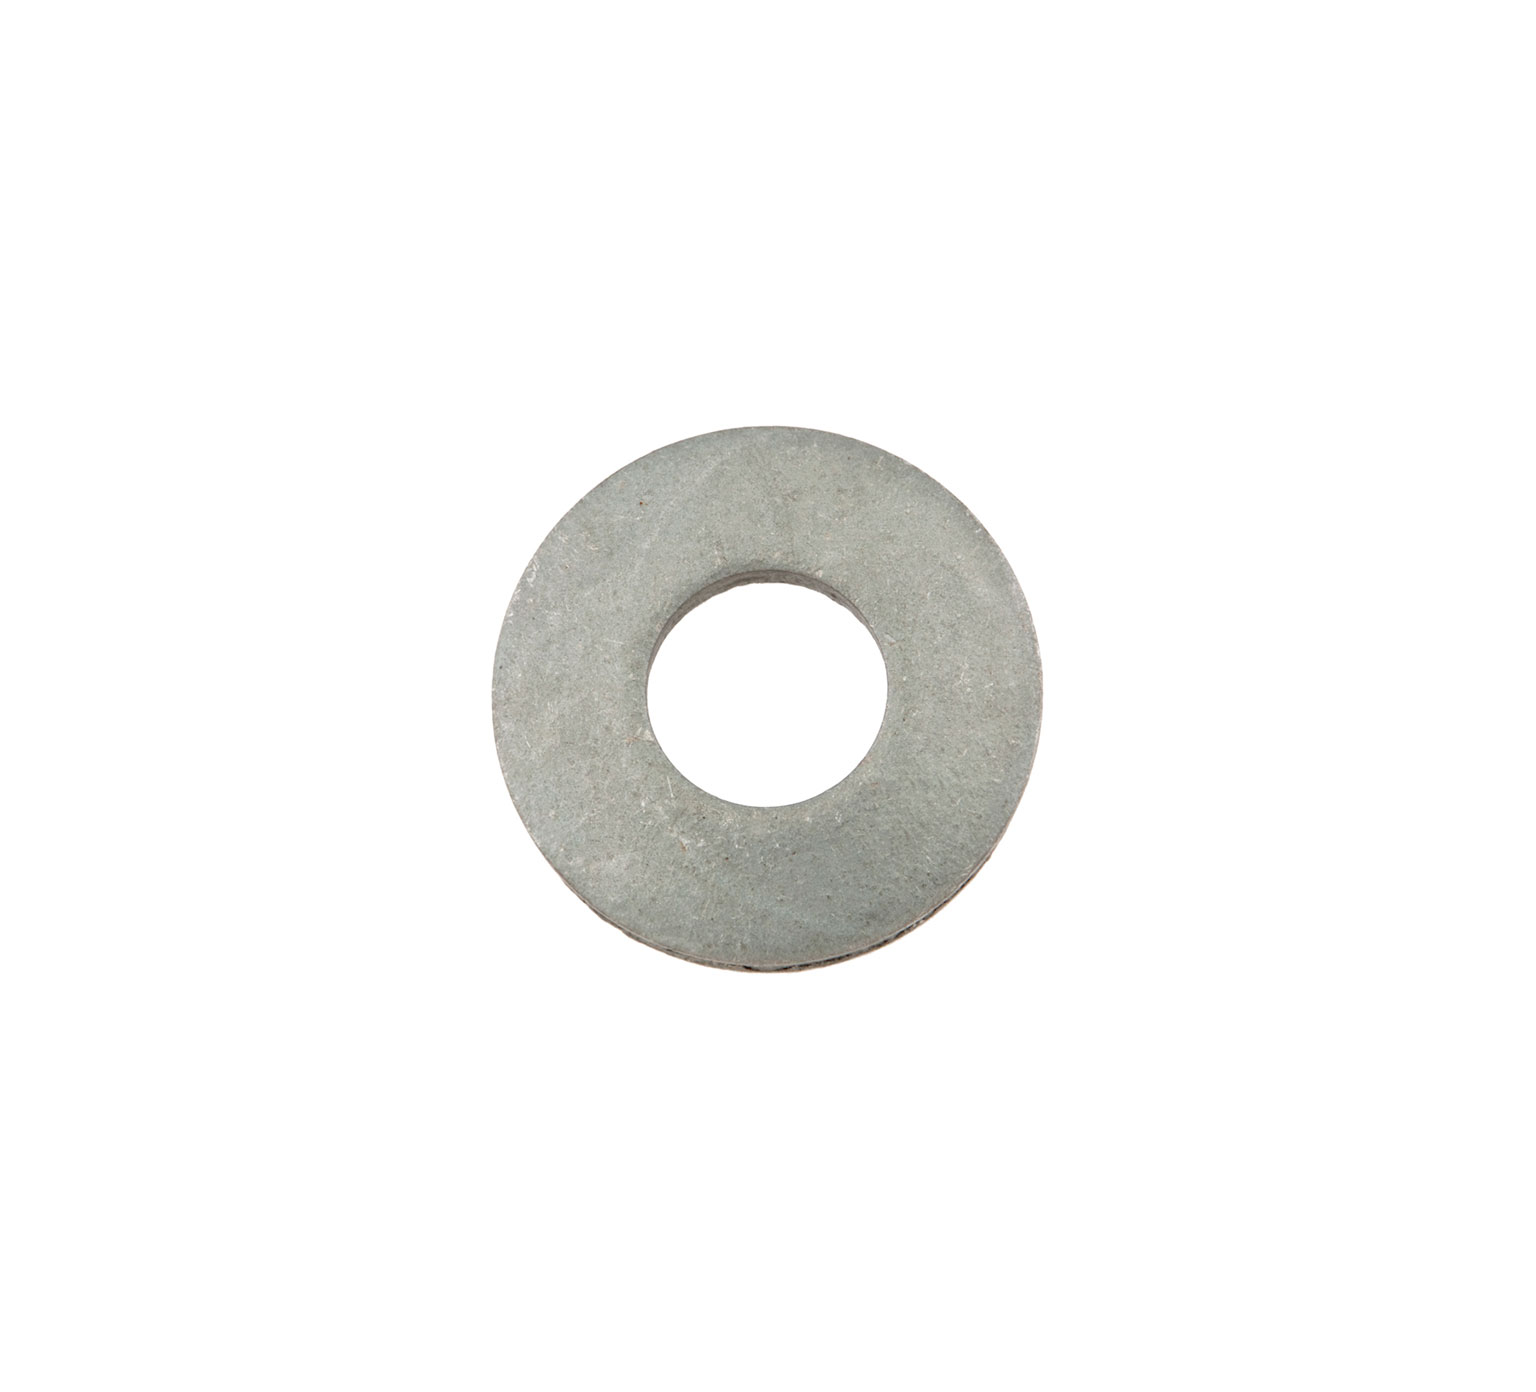 41187 Steel Flat Washer - 0.945 OD x 0.413 ID x 0.145 in alt 1